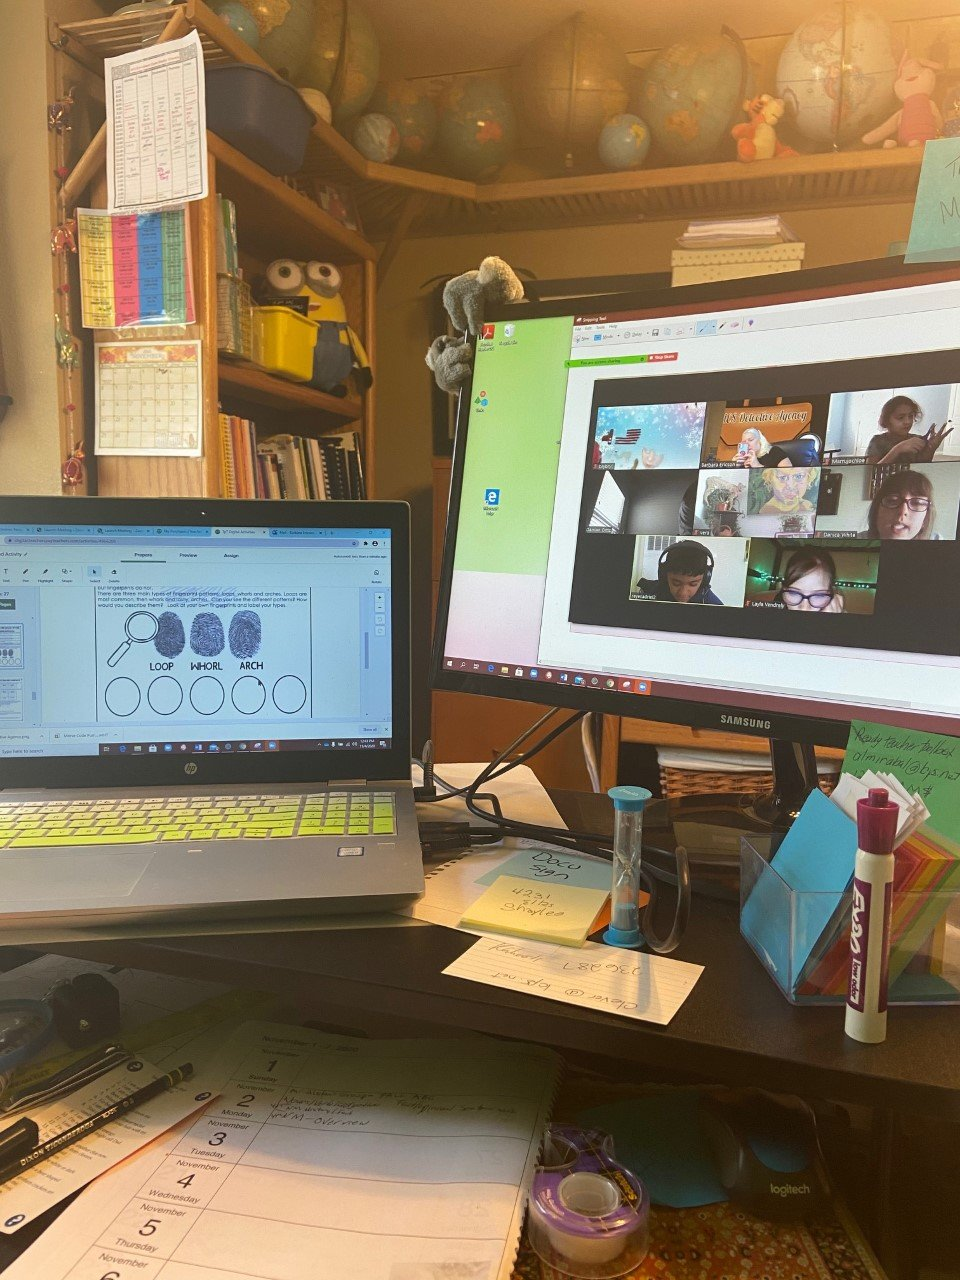 Some of teacher Barb Ericson's tools to help facilitate more productive class time via Zoom.